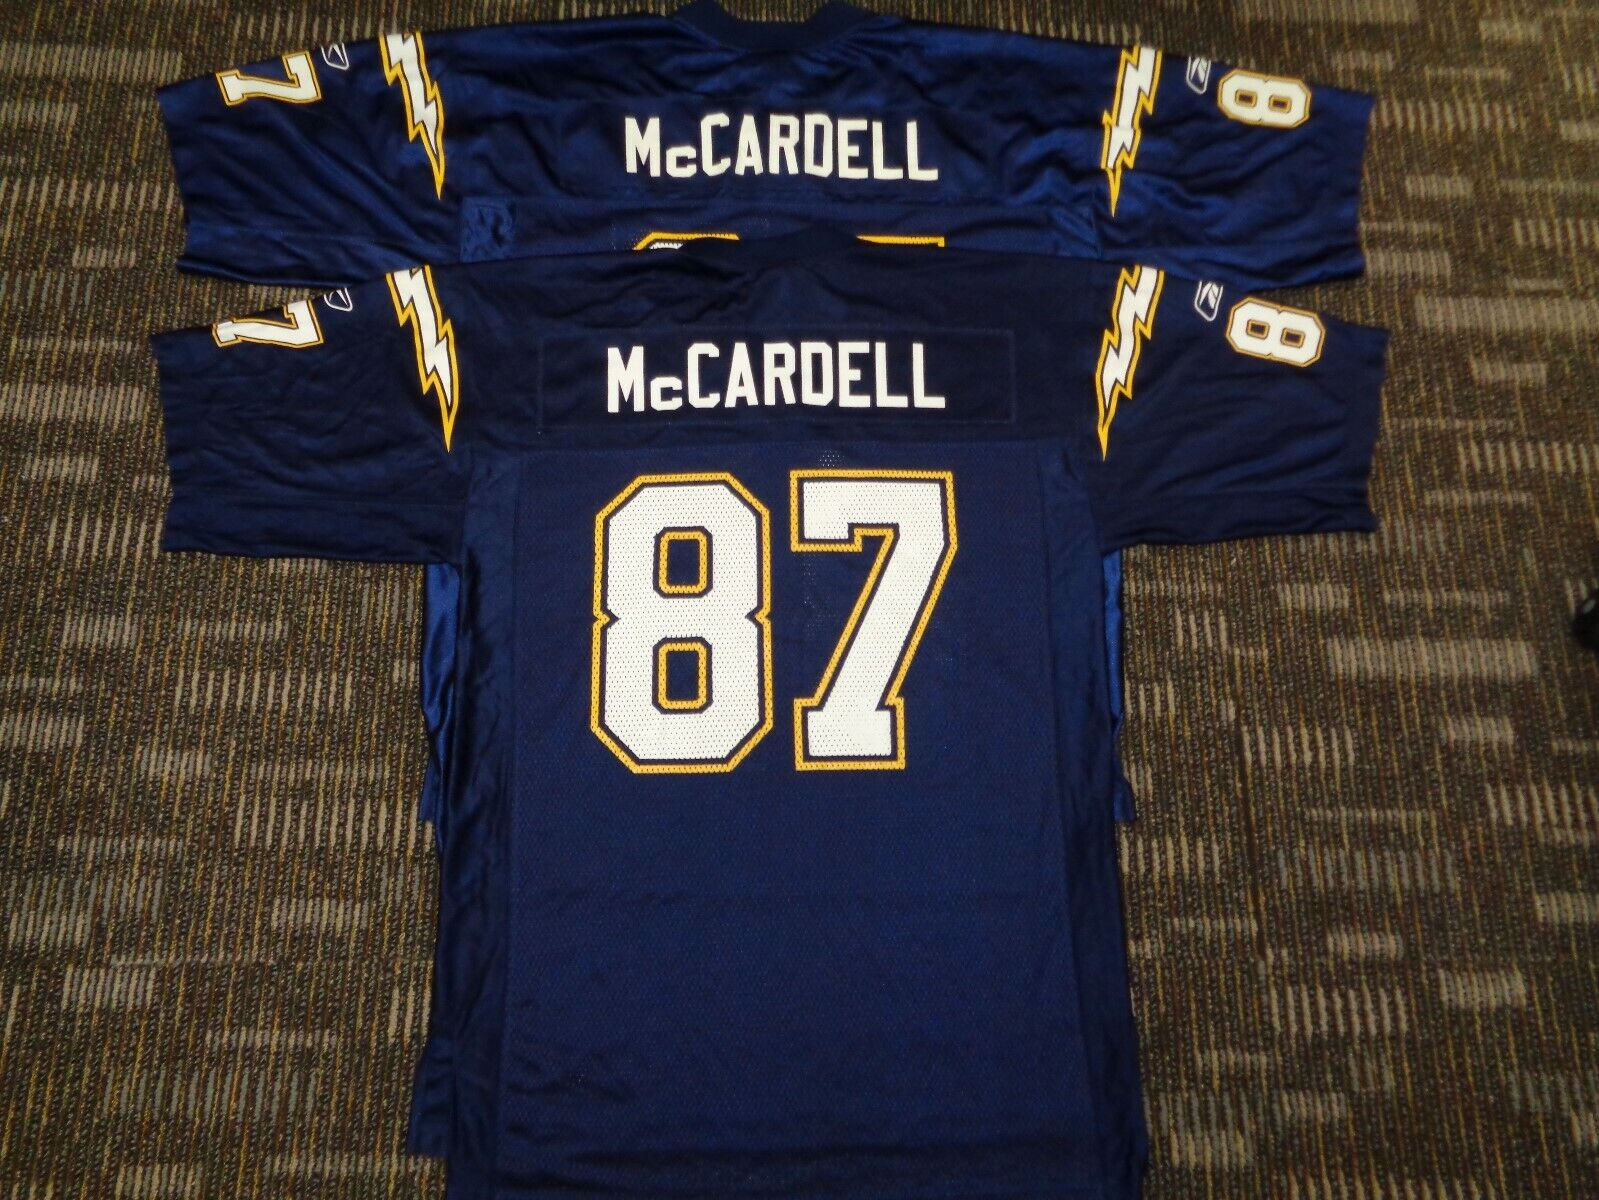 LOT-KEENAN McCARDELL SAN DIEGO LOS ANGELES CHARGERS REEBOK NFL GAME JERSEYS LG M - $39.99